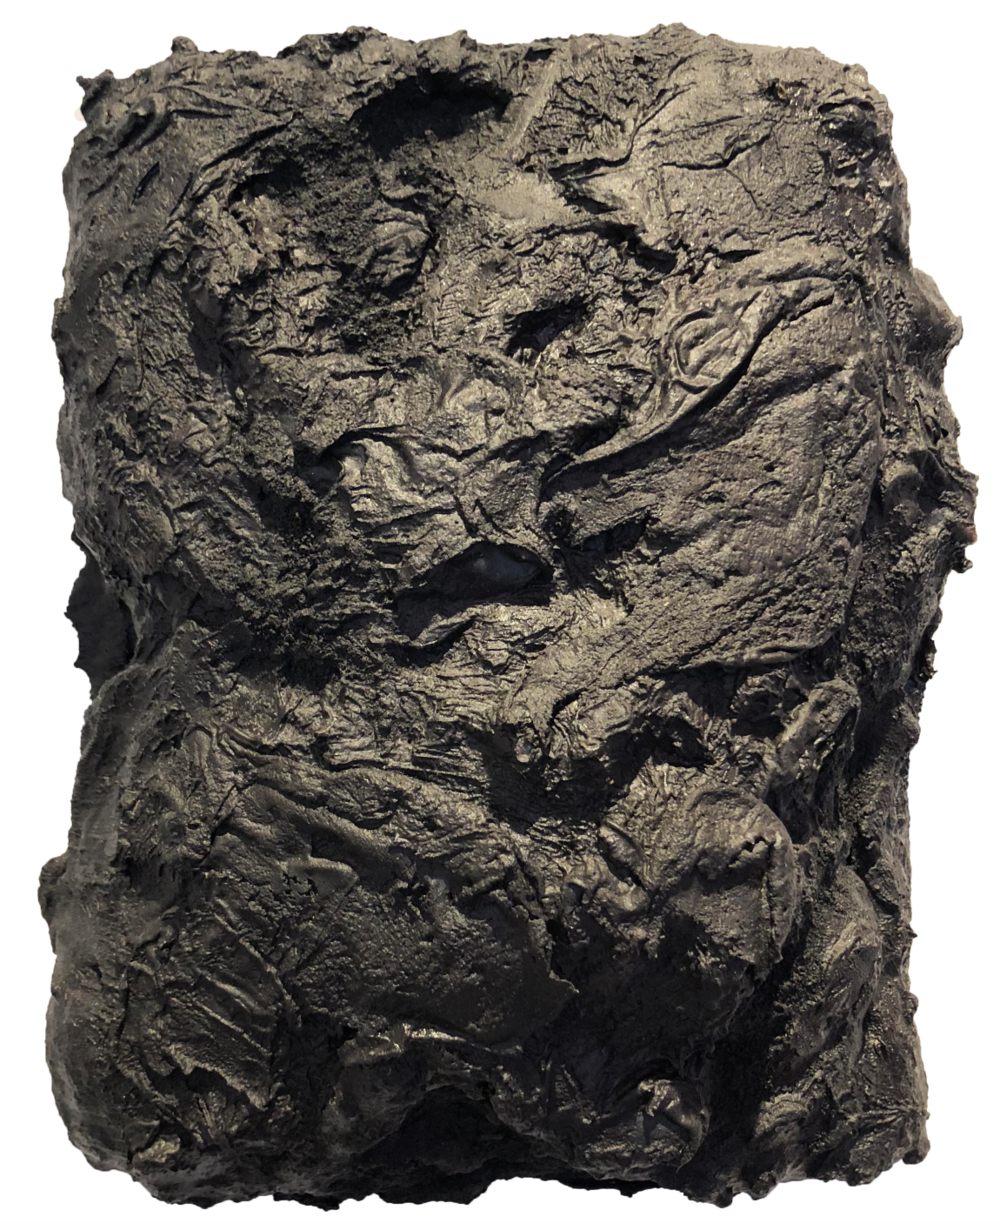 Matthew C. Metzger, Untitled  Iron, Oil, Isocyanate, Polyol Resin, 10x7 in.